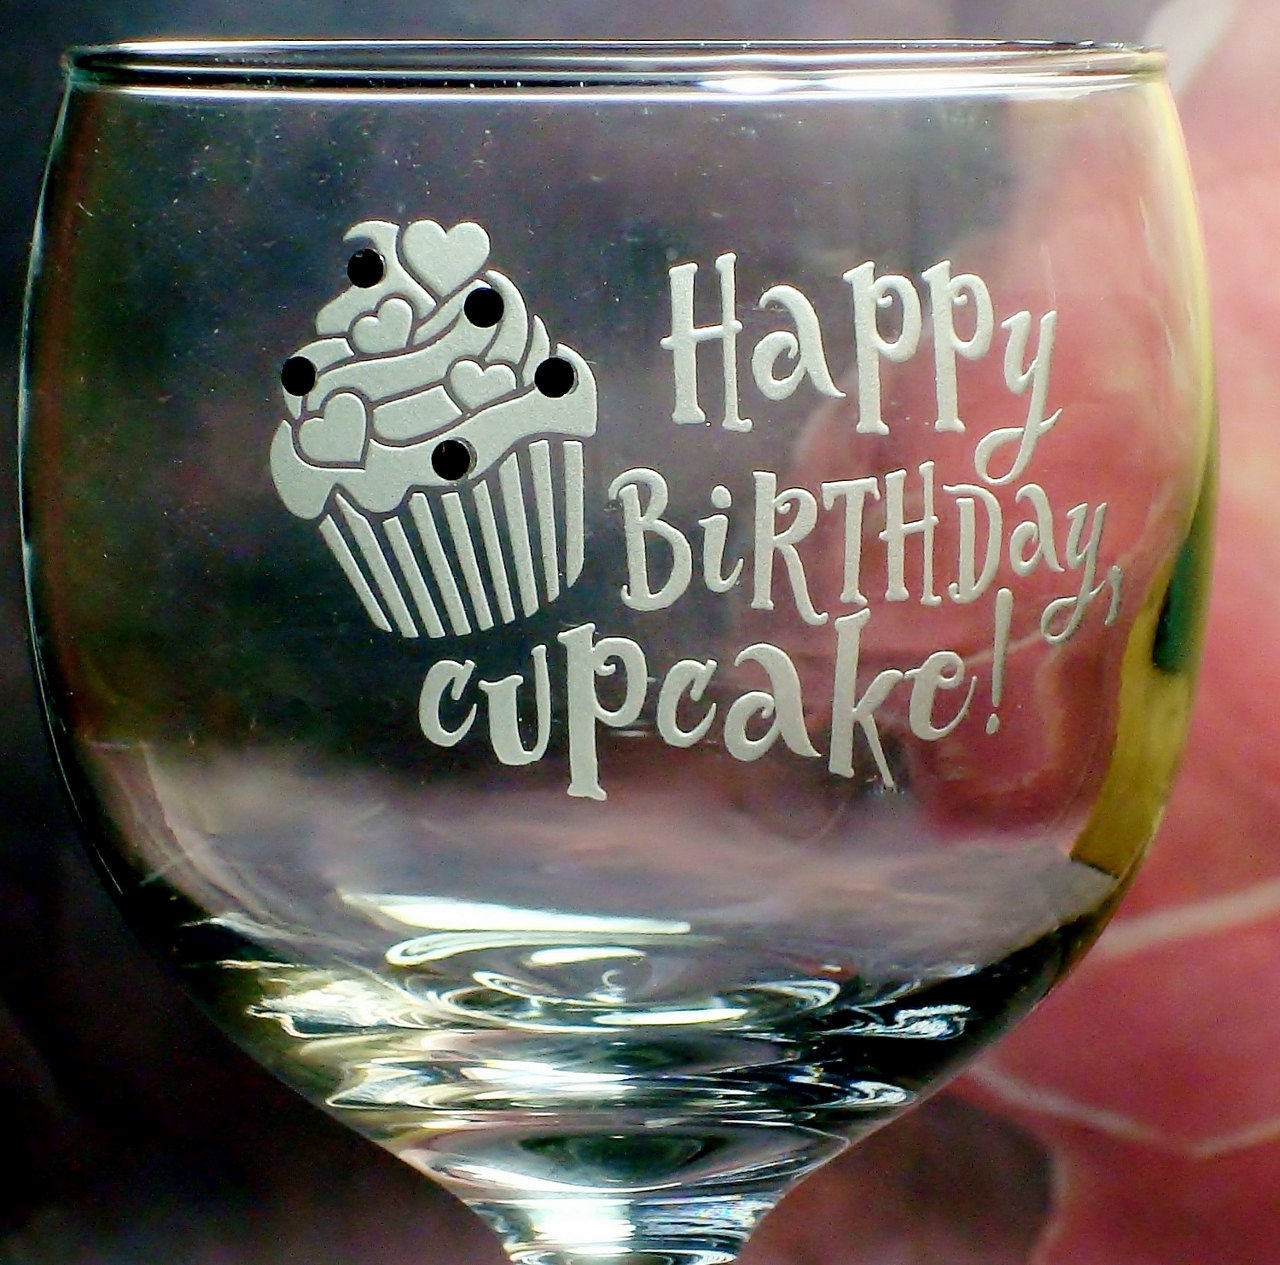 Personalized Happy Birthday Cupcake Wine Glass with Swarovski Sprinkles Girlfriend Birthday Gift for Her